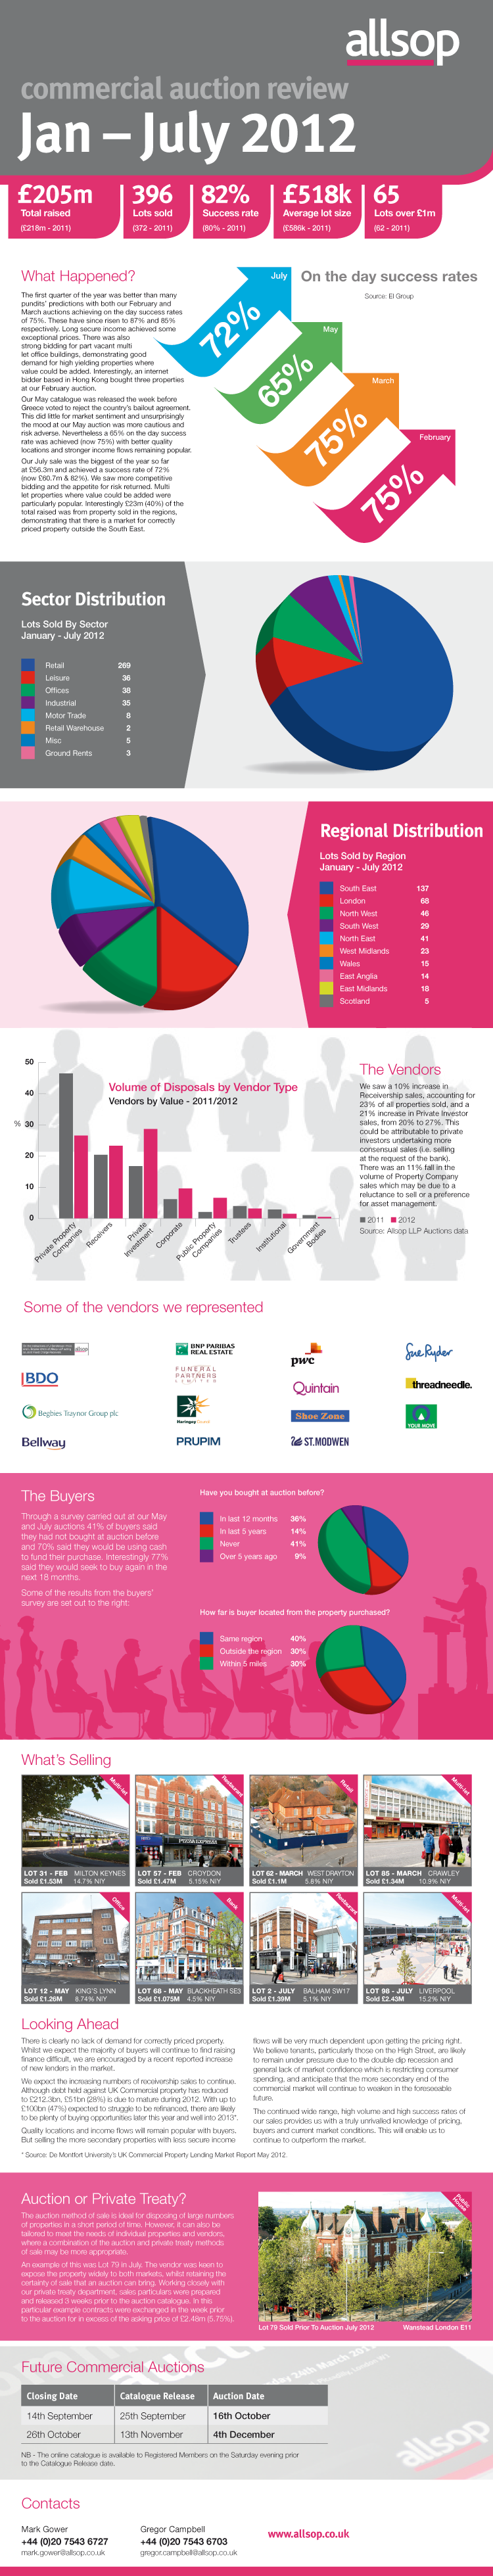 Allsop - Commercial Property Auction Summer Infographic Review 2012 - what's selling and where and buyers behaviour.